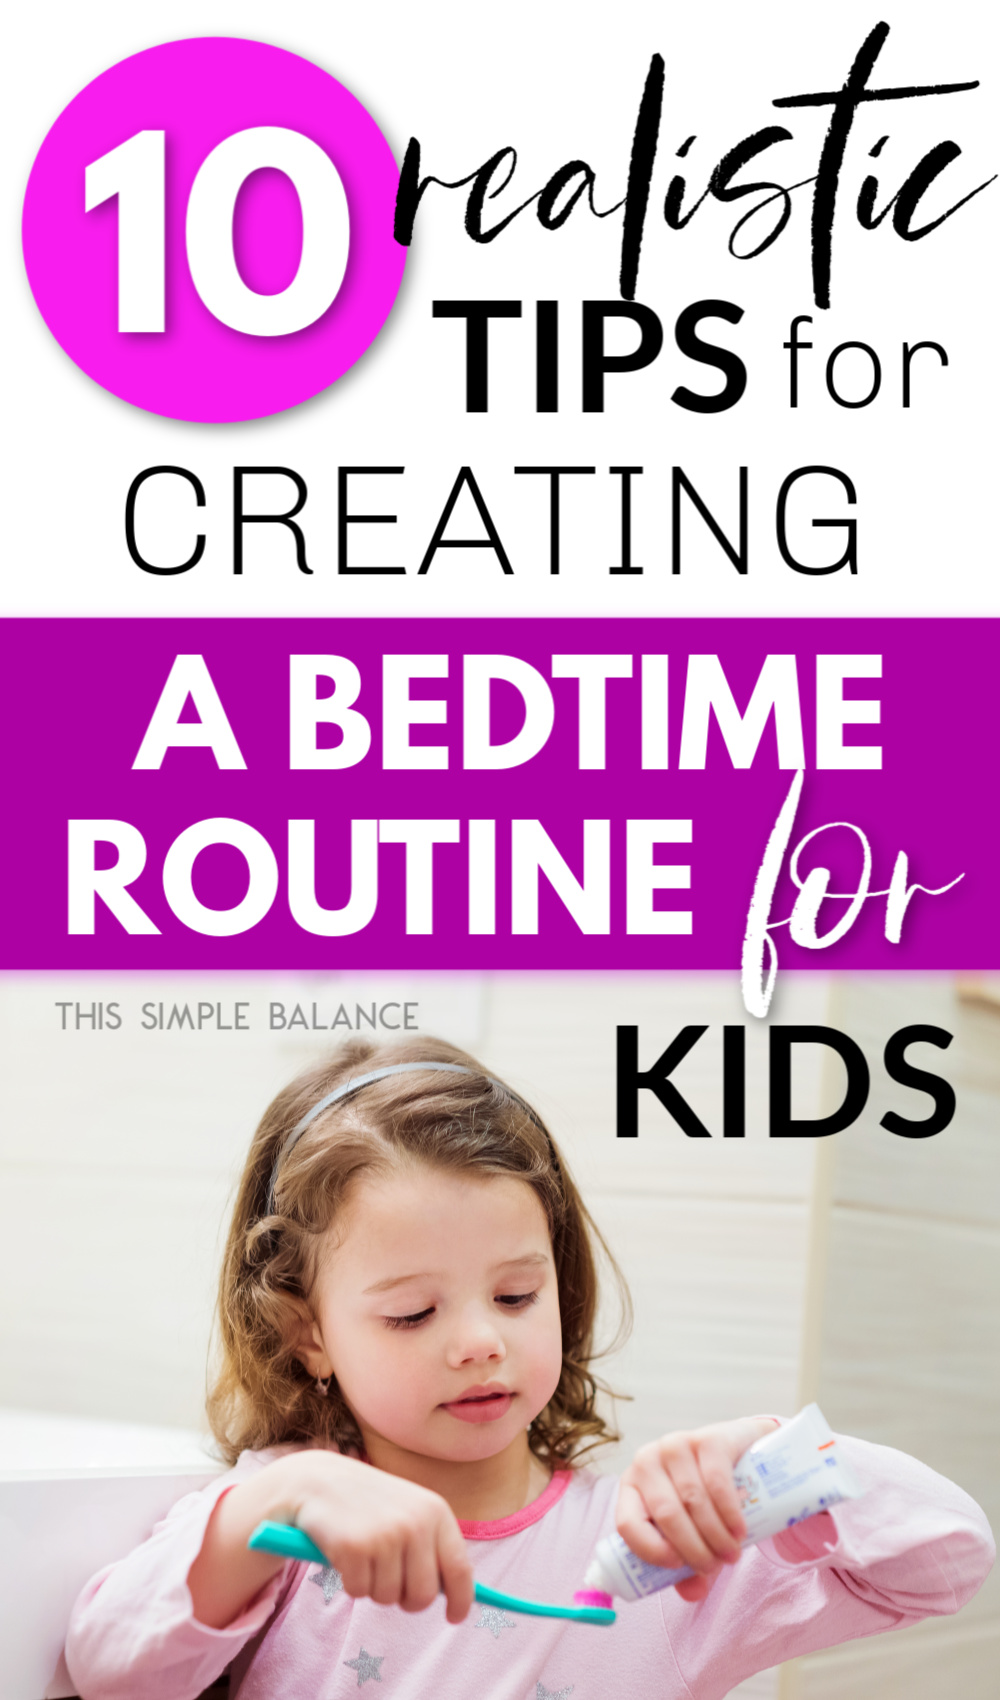 Bedtime tips for parents (from a real life, big family parenting perspective, and a touch of parenting humor)